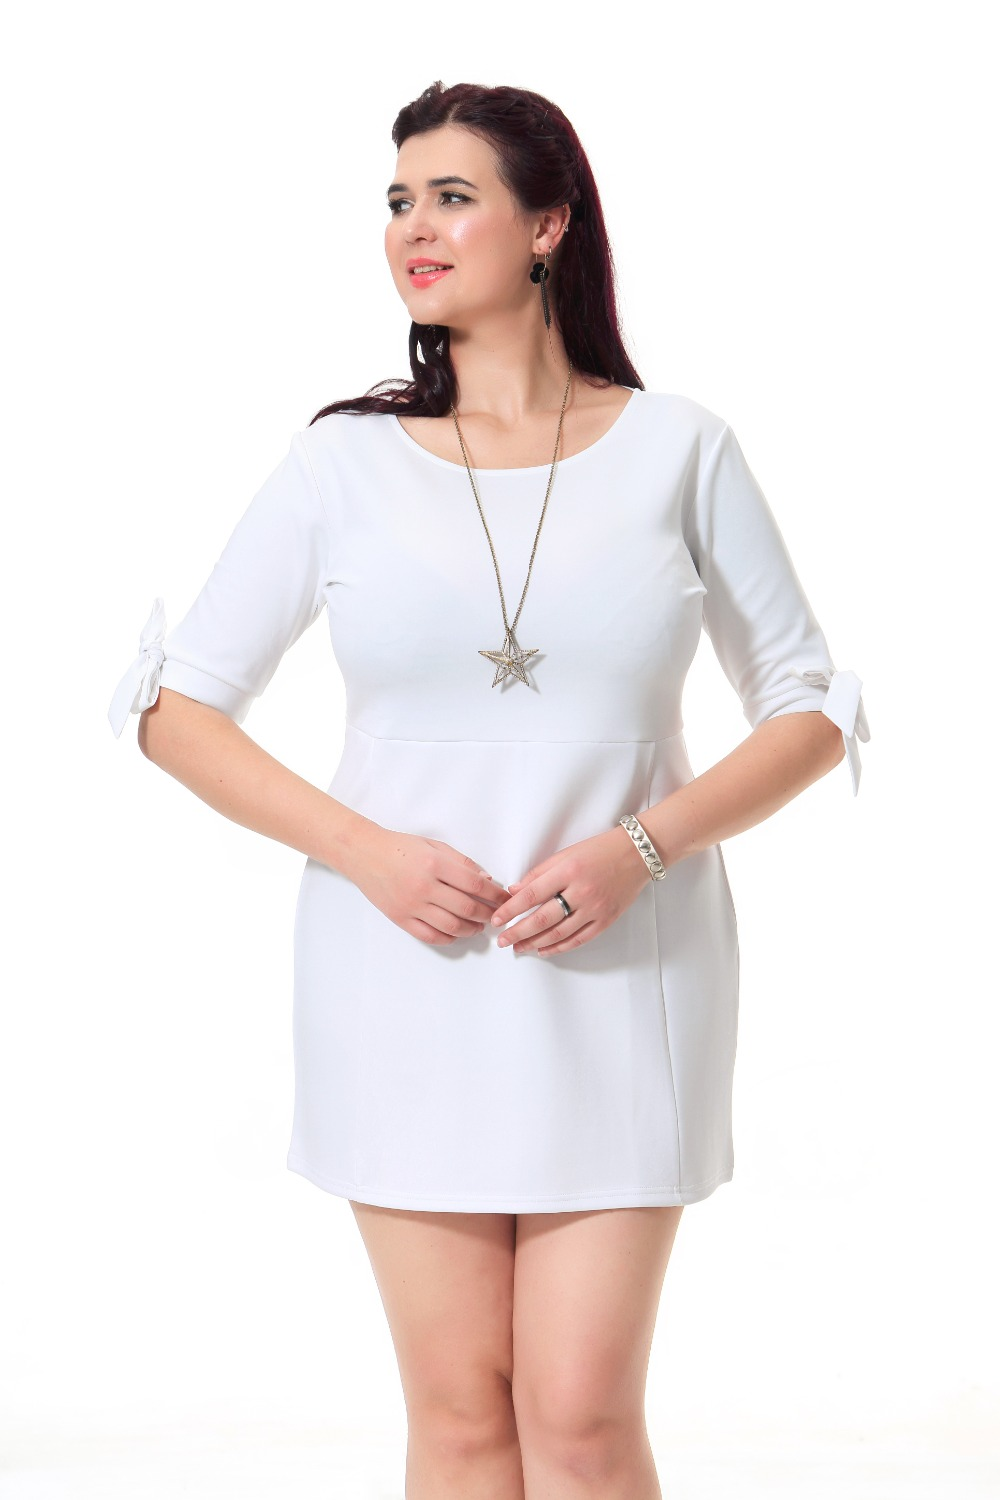 US $18.18  6 Colors Plus Size Skater Dresses For Women With Bow Sleeve Cute  Party Dress Summer 3xl 7xl White Black Blue Red Navy purple 41 -in Dresses  ...